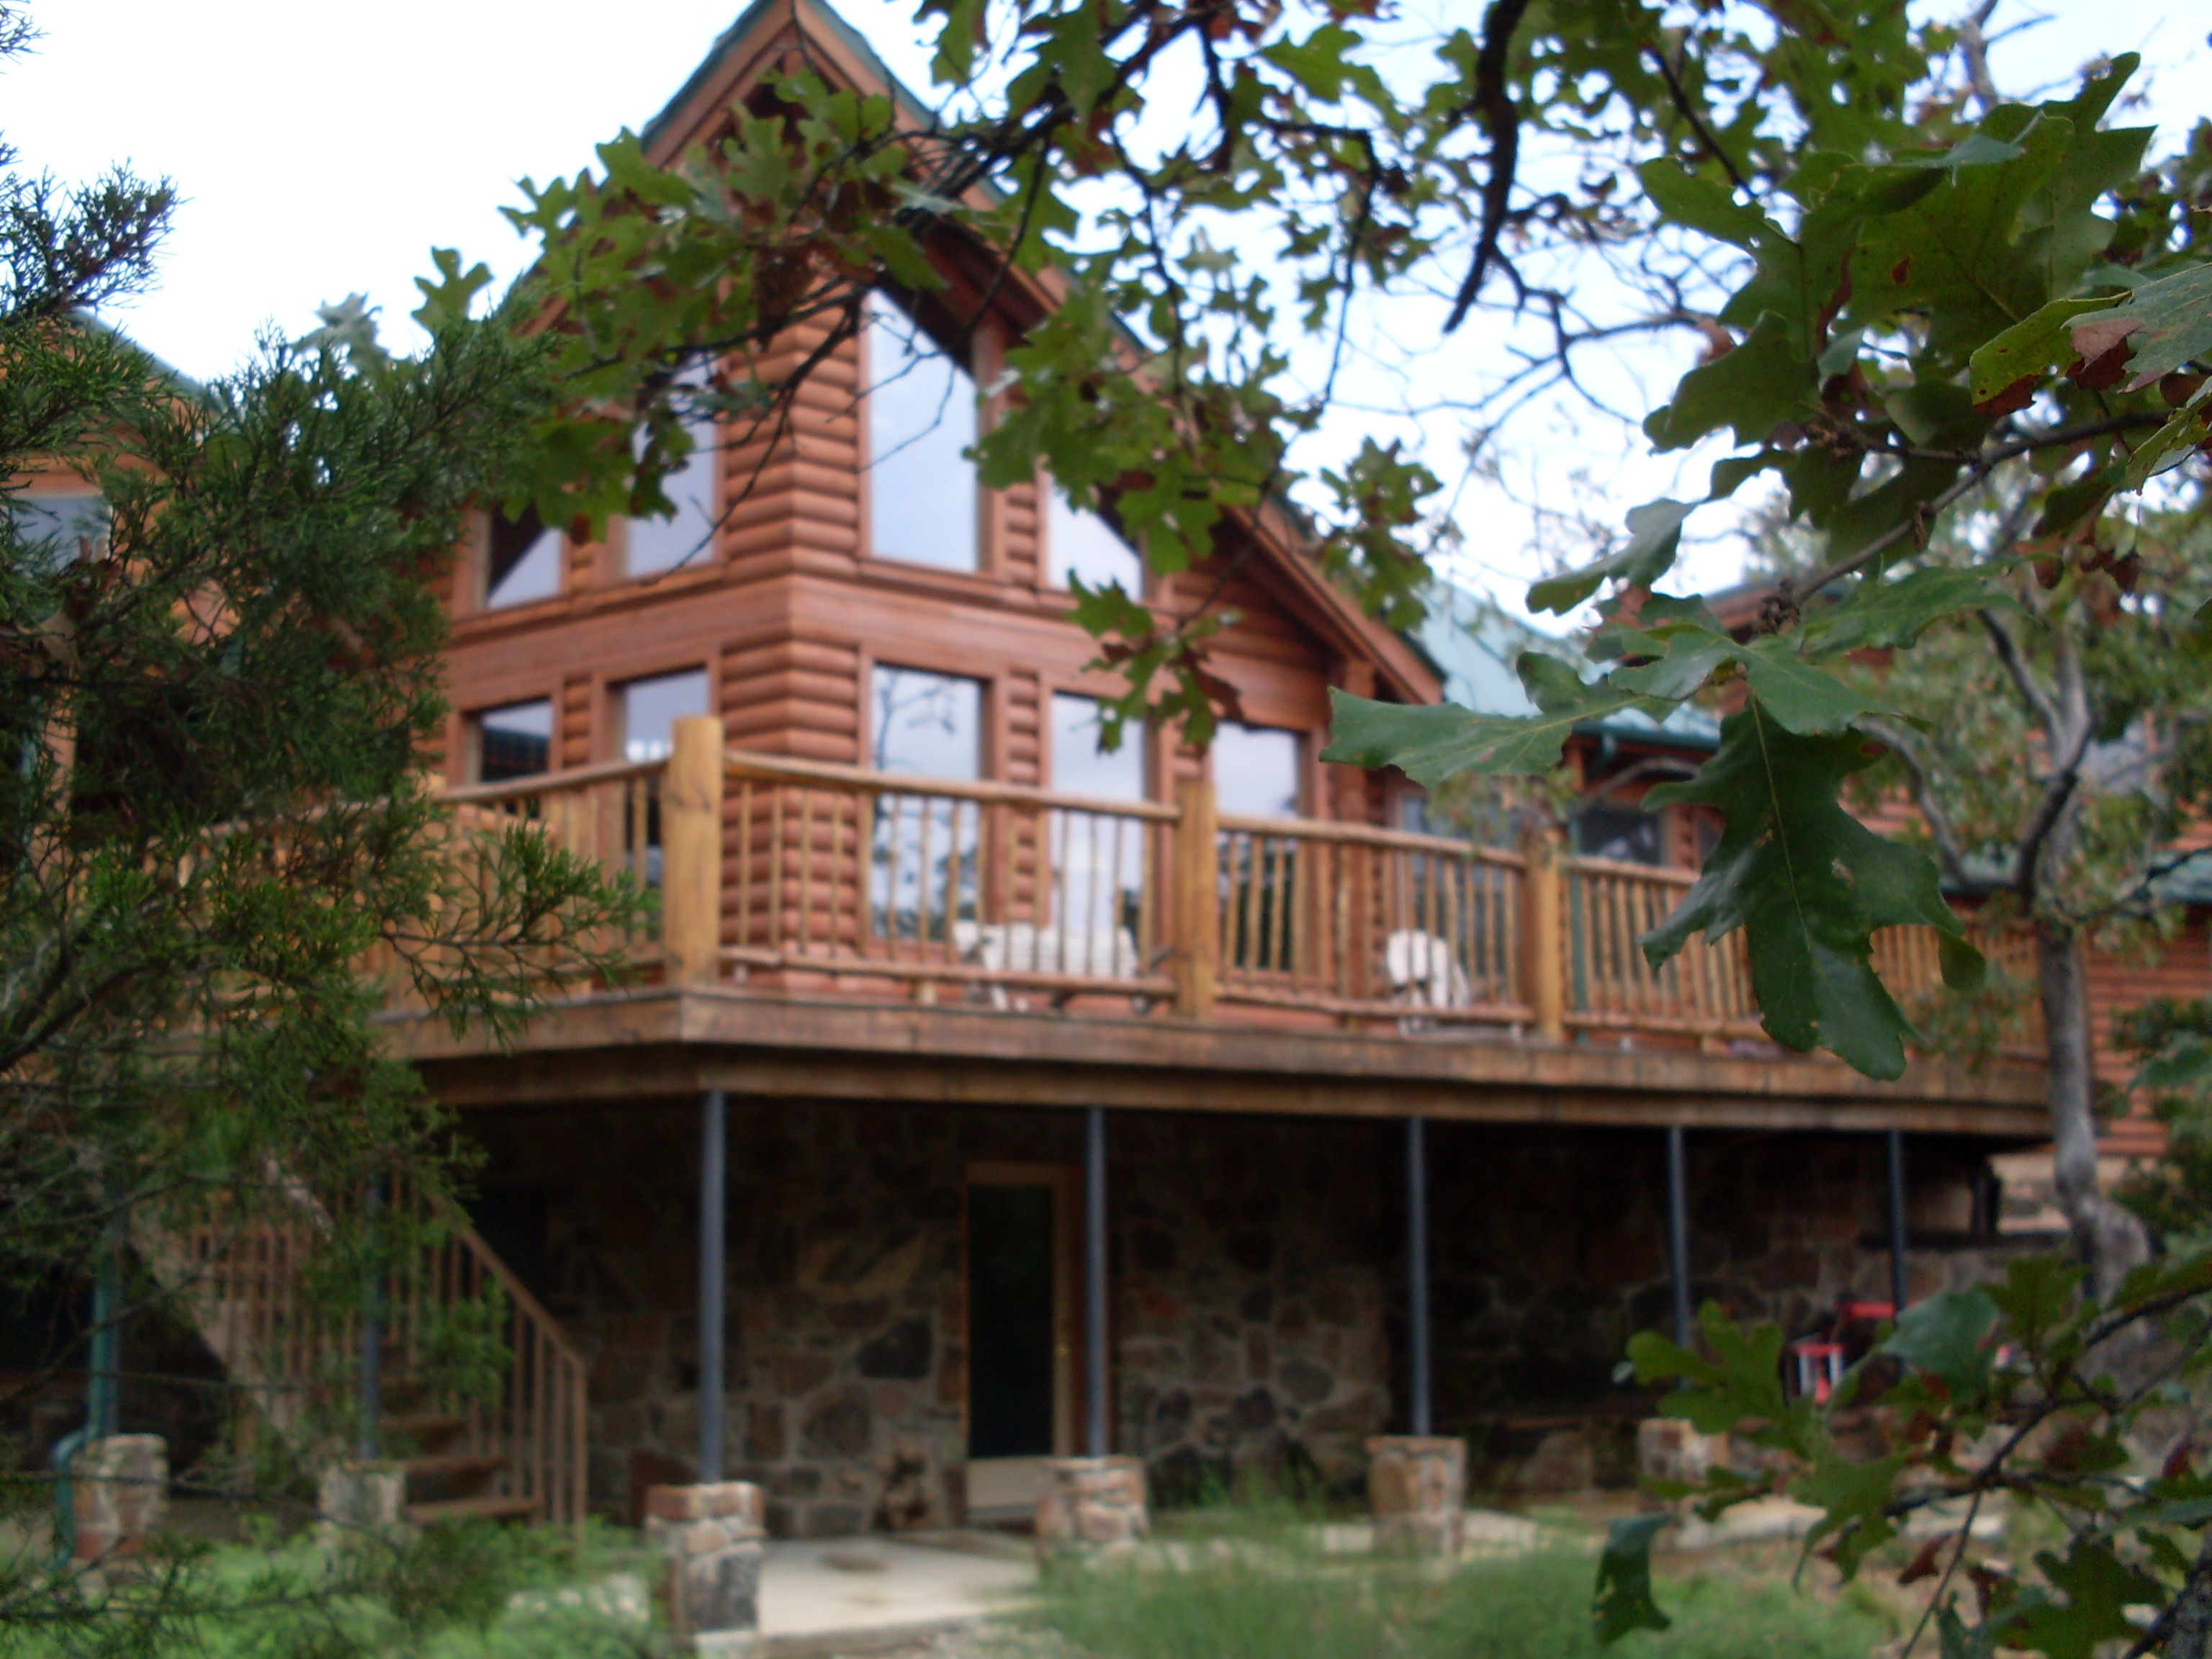 Oklahoma Stone Log House, My Vision For Combining Log Siding And With Our  Existing Stone